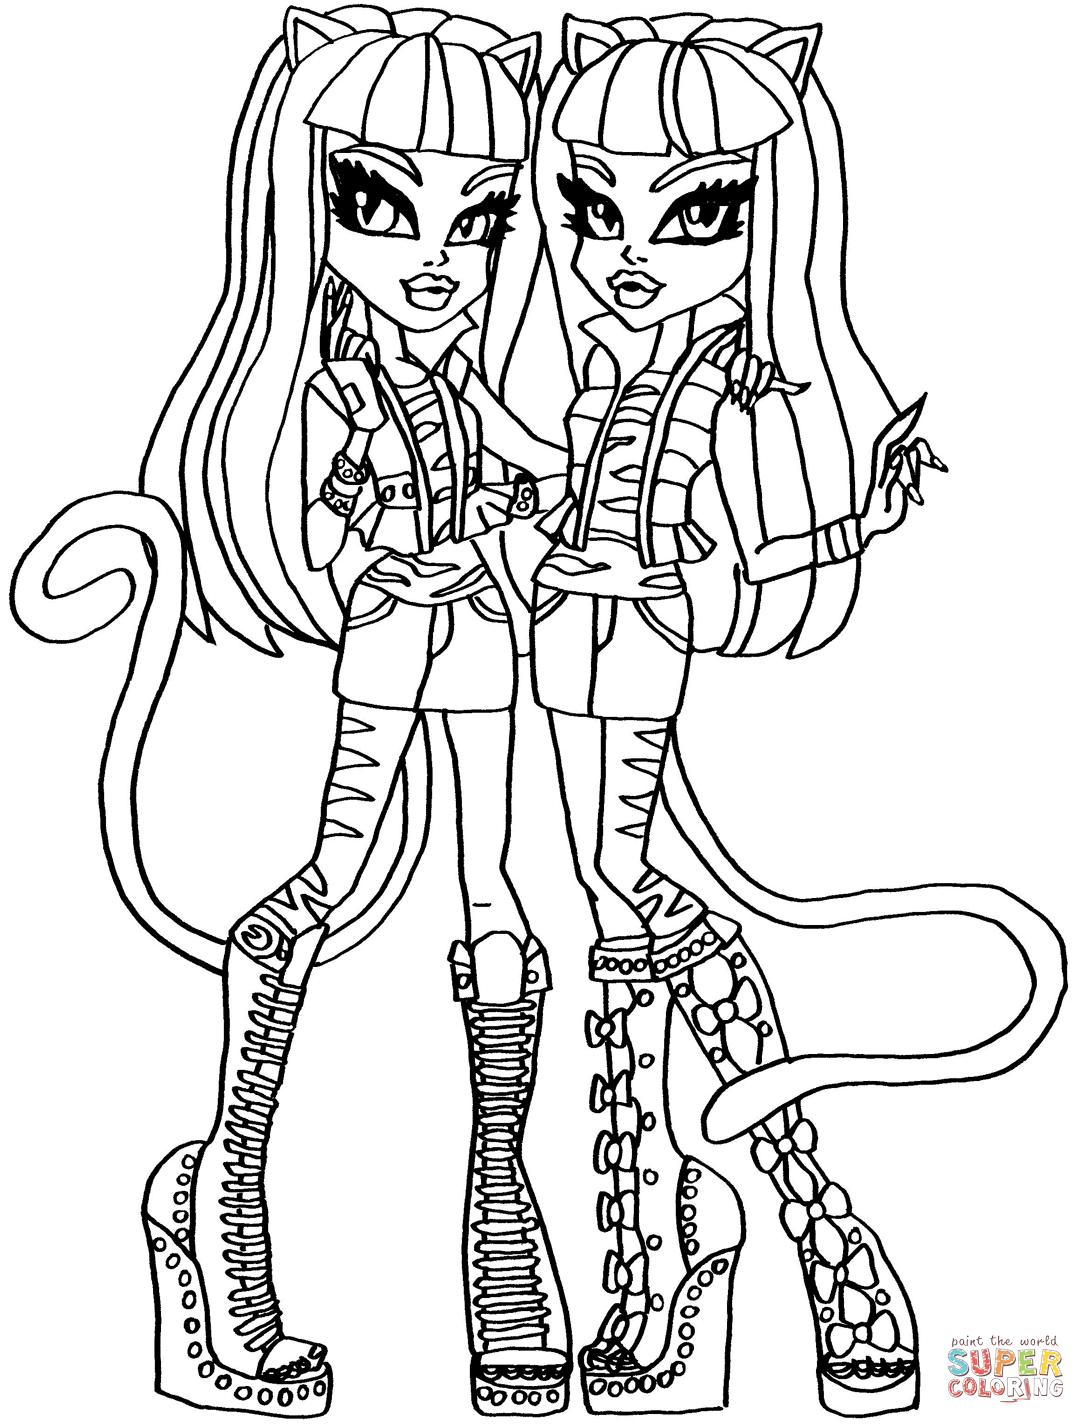 Exquisite Monster High Printables Coloring Pages Free Gallery Of Lagoona Blue Monster High Coloring Pages for Kids Printable Free Printable